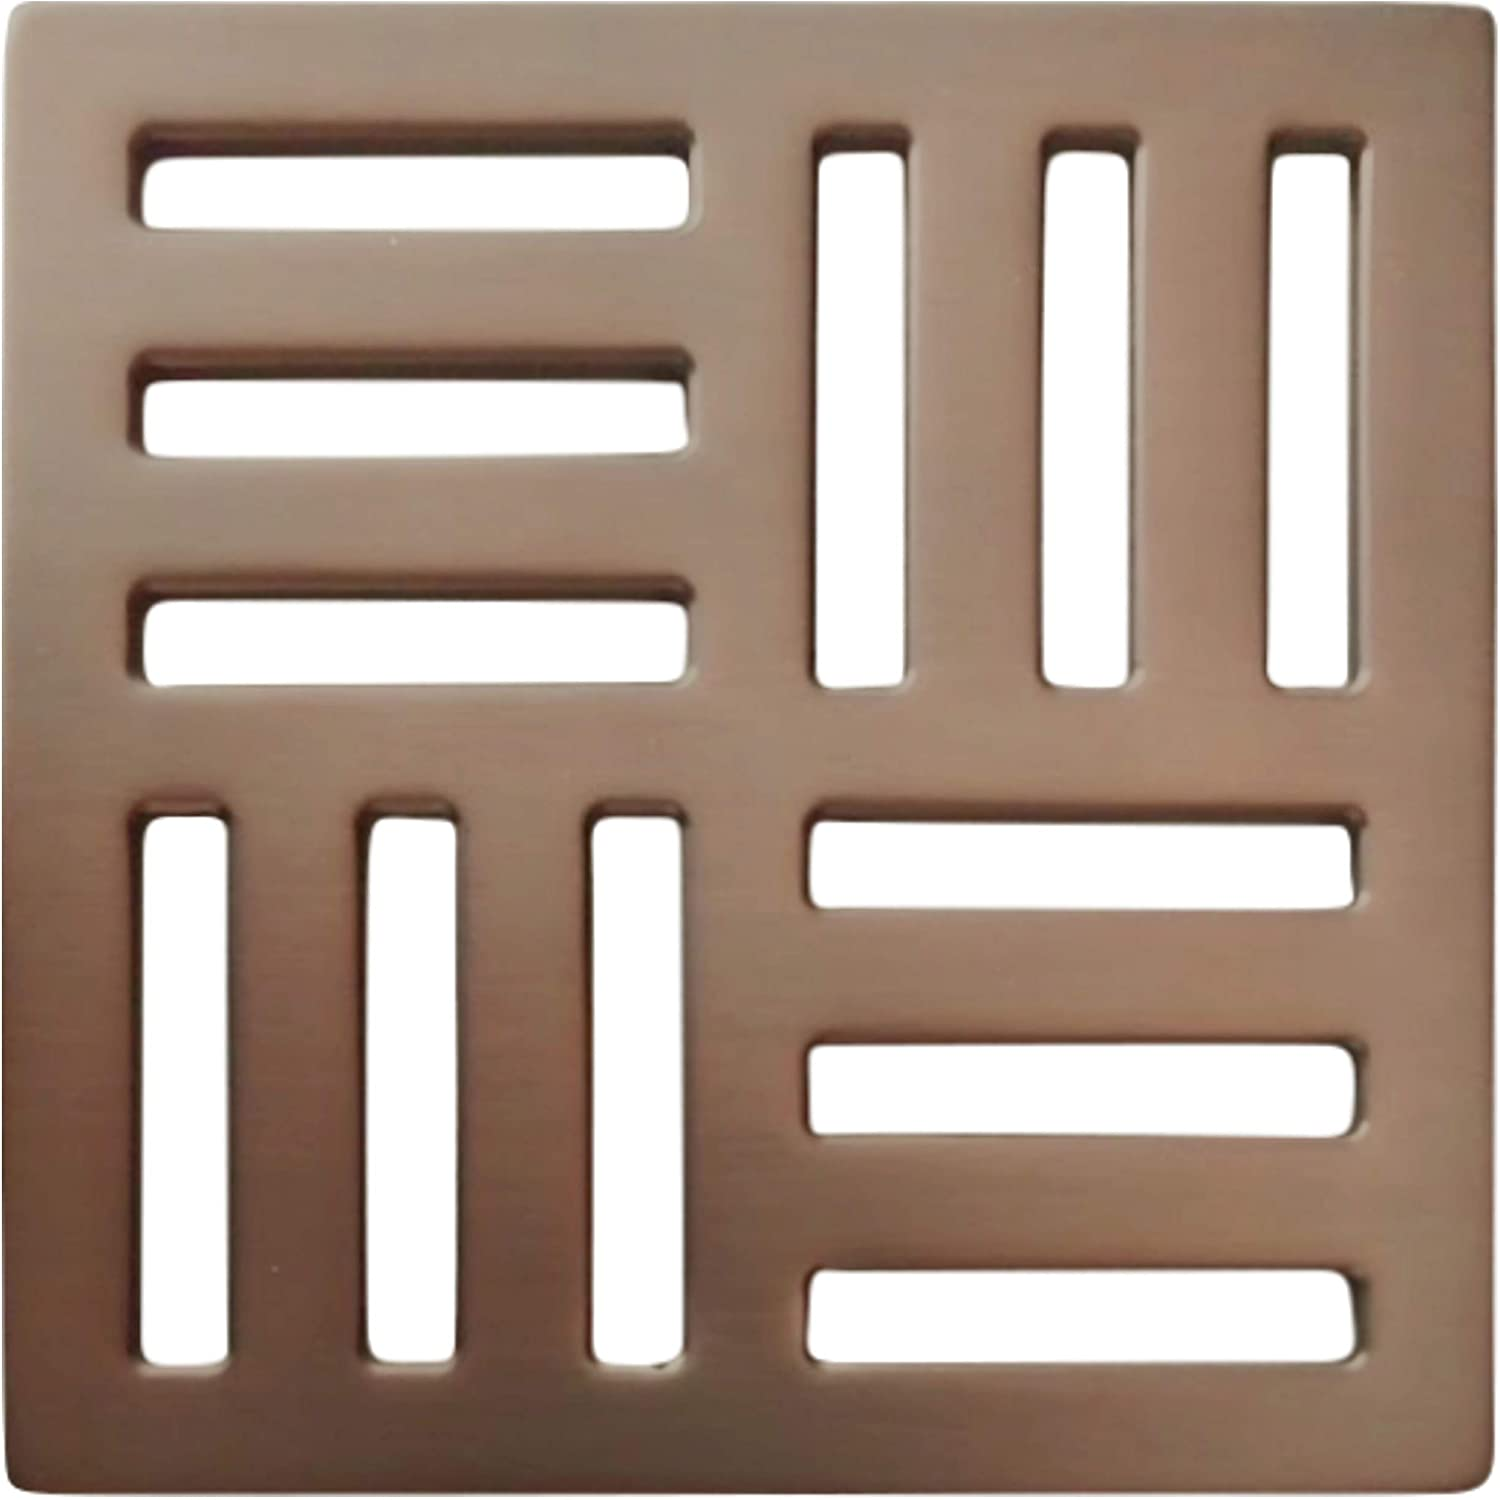 OASI 3.75 Inch セール品 Premium Stainless 日本製 Steel for Grate 4 Drain -